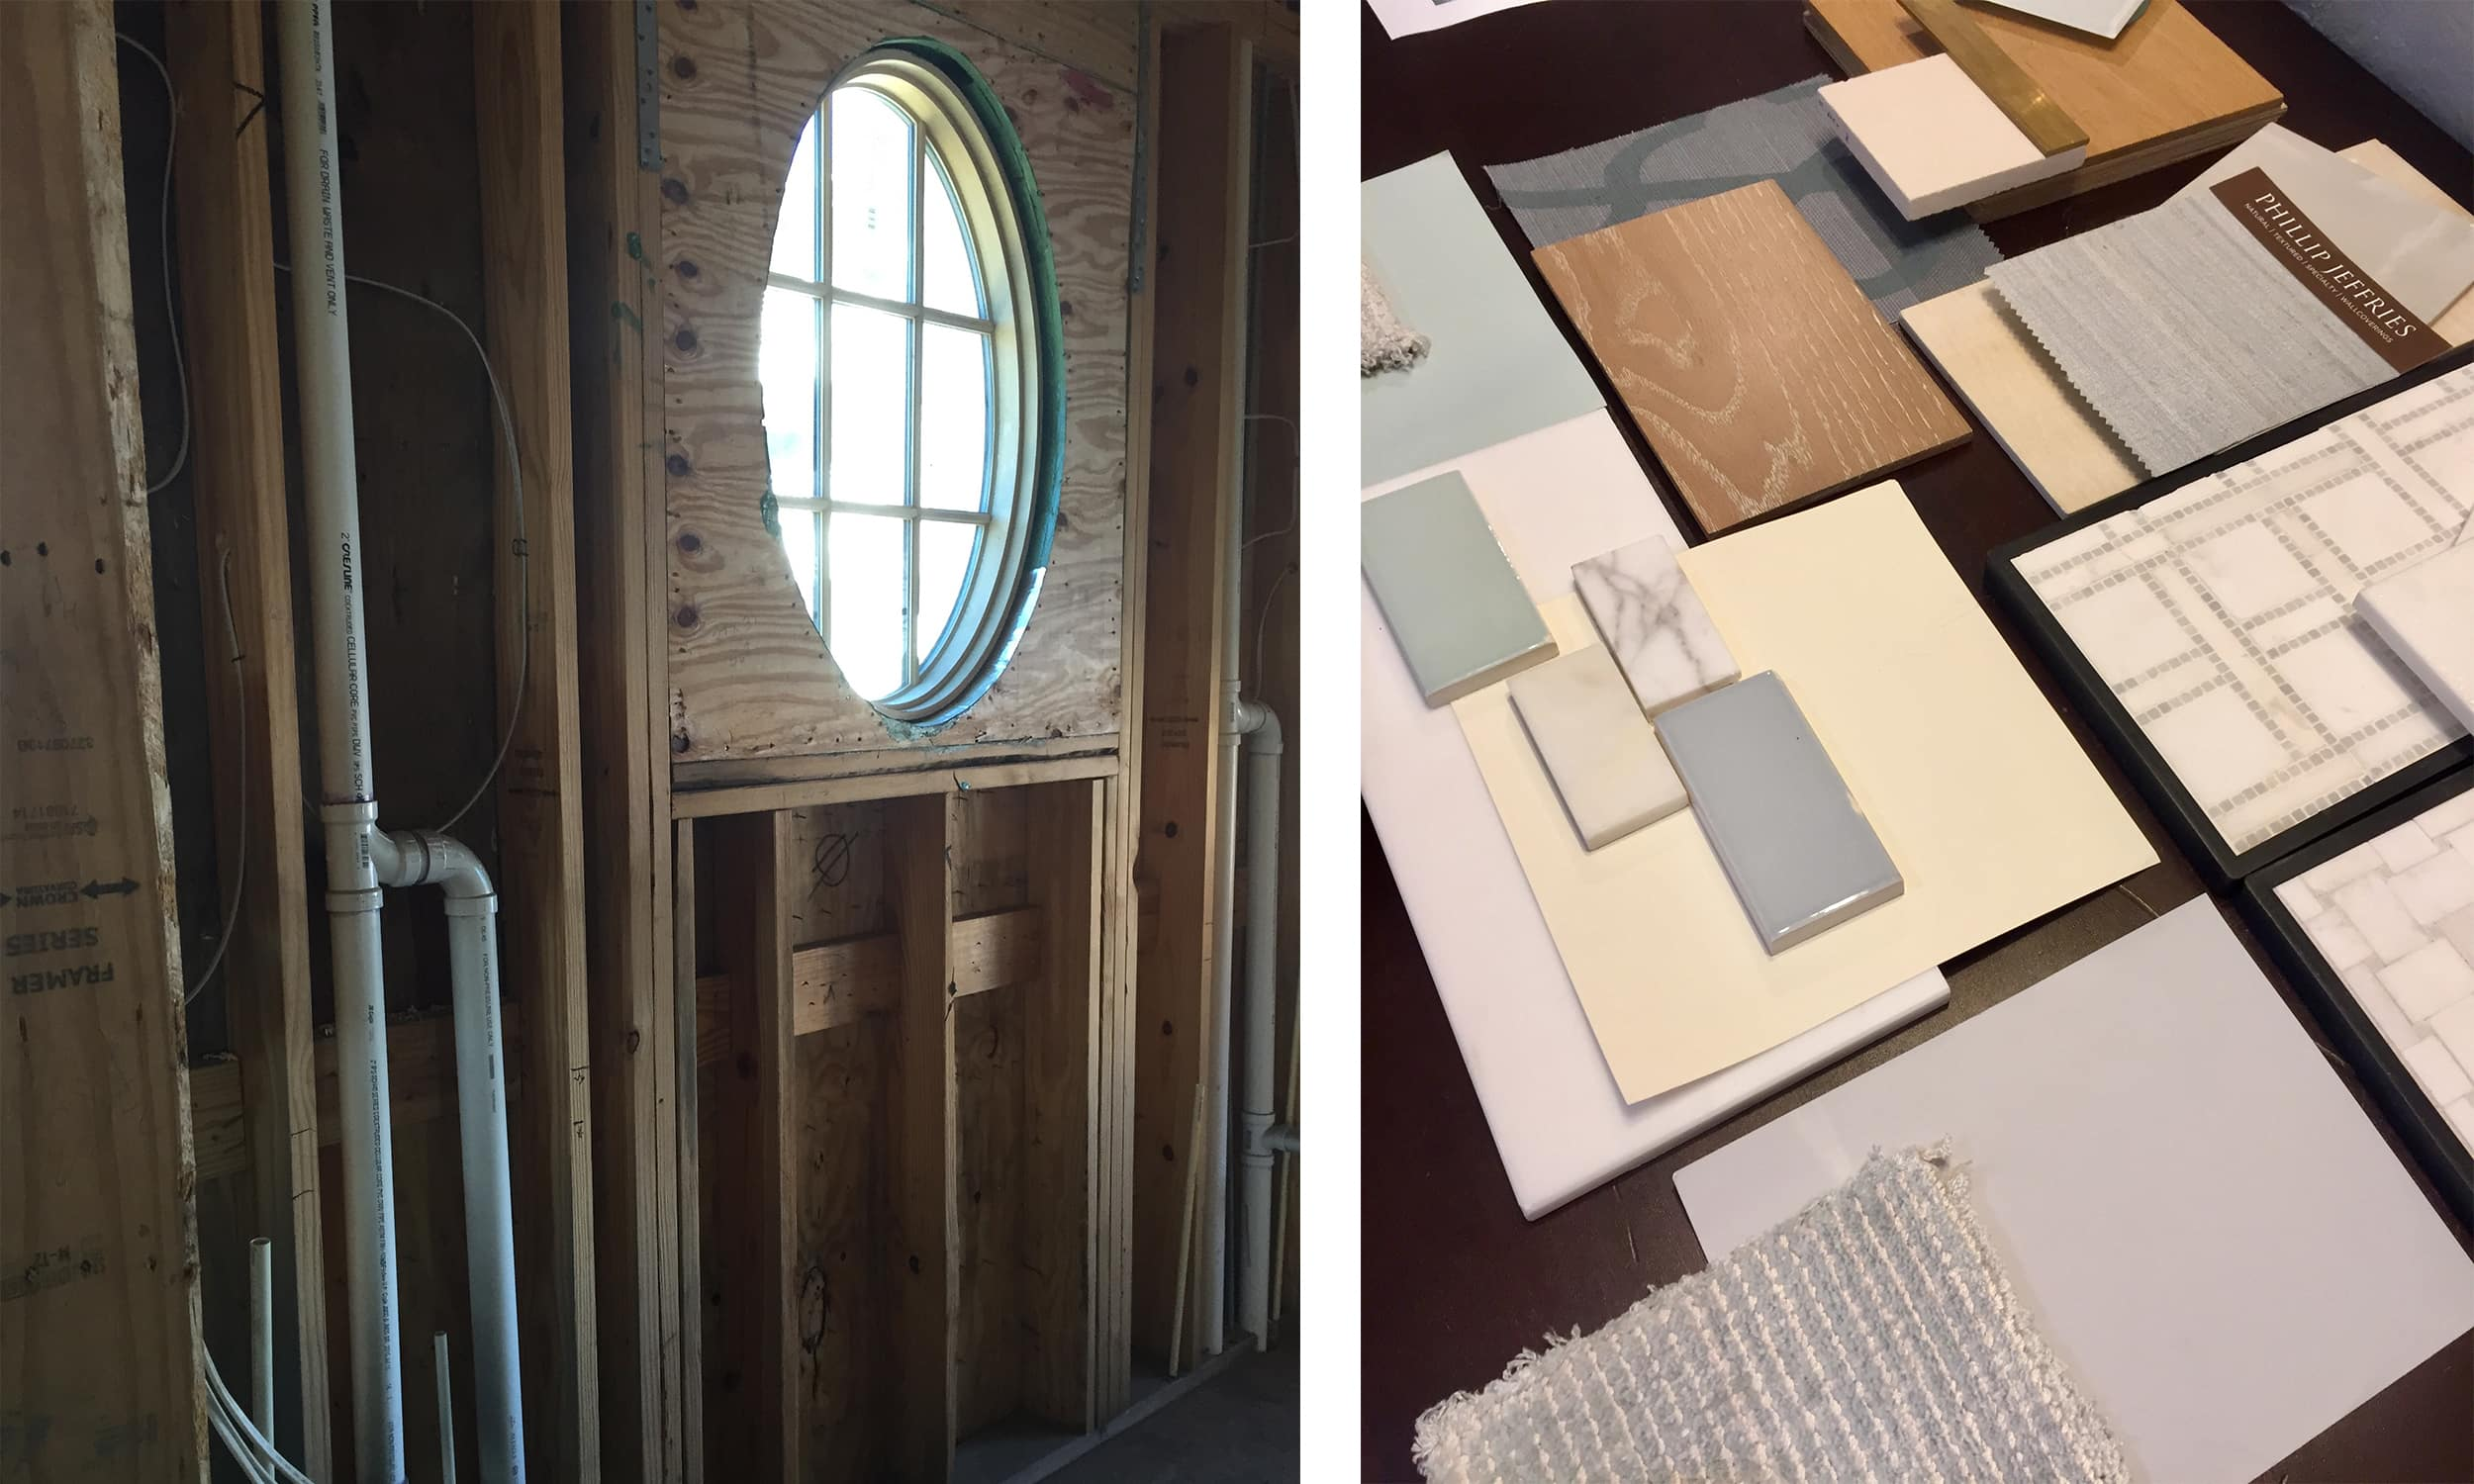 watersound beach, fl bathroom swatching process with portholes - darci hether new york